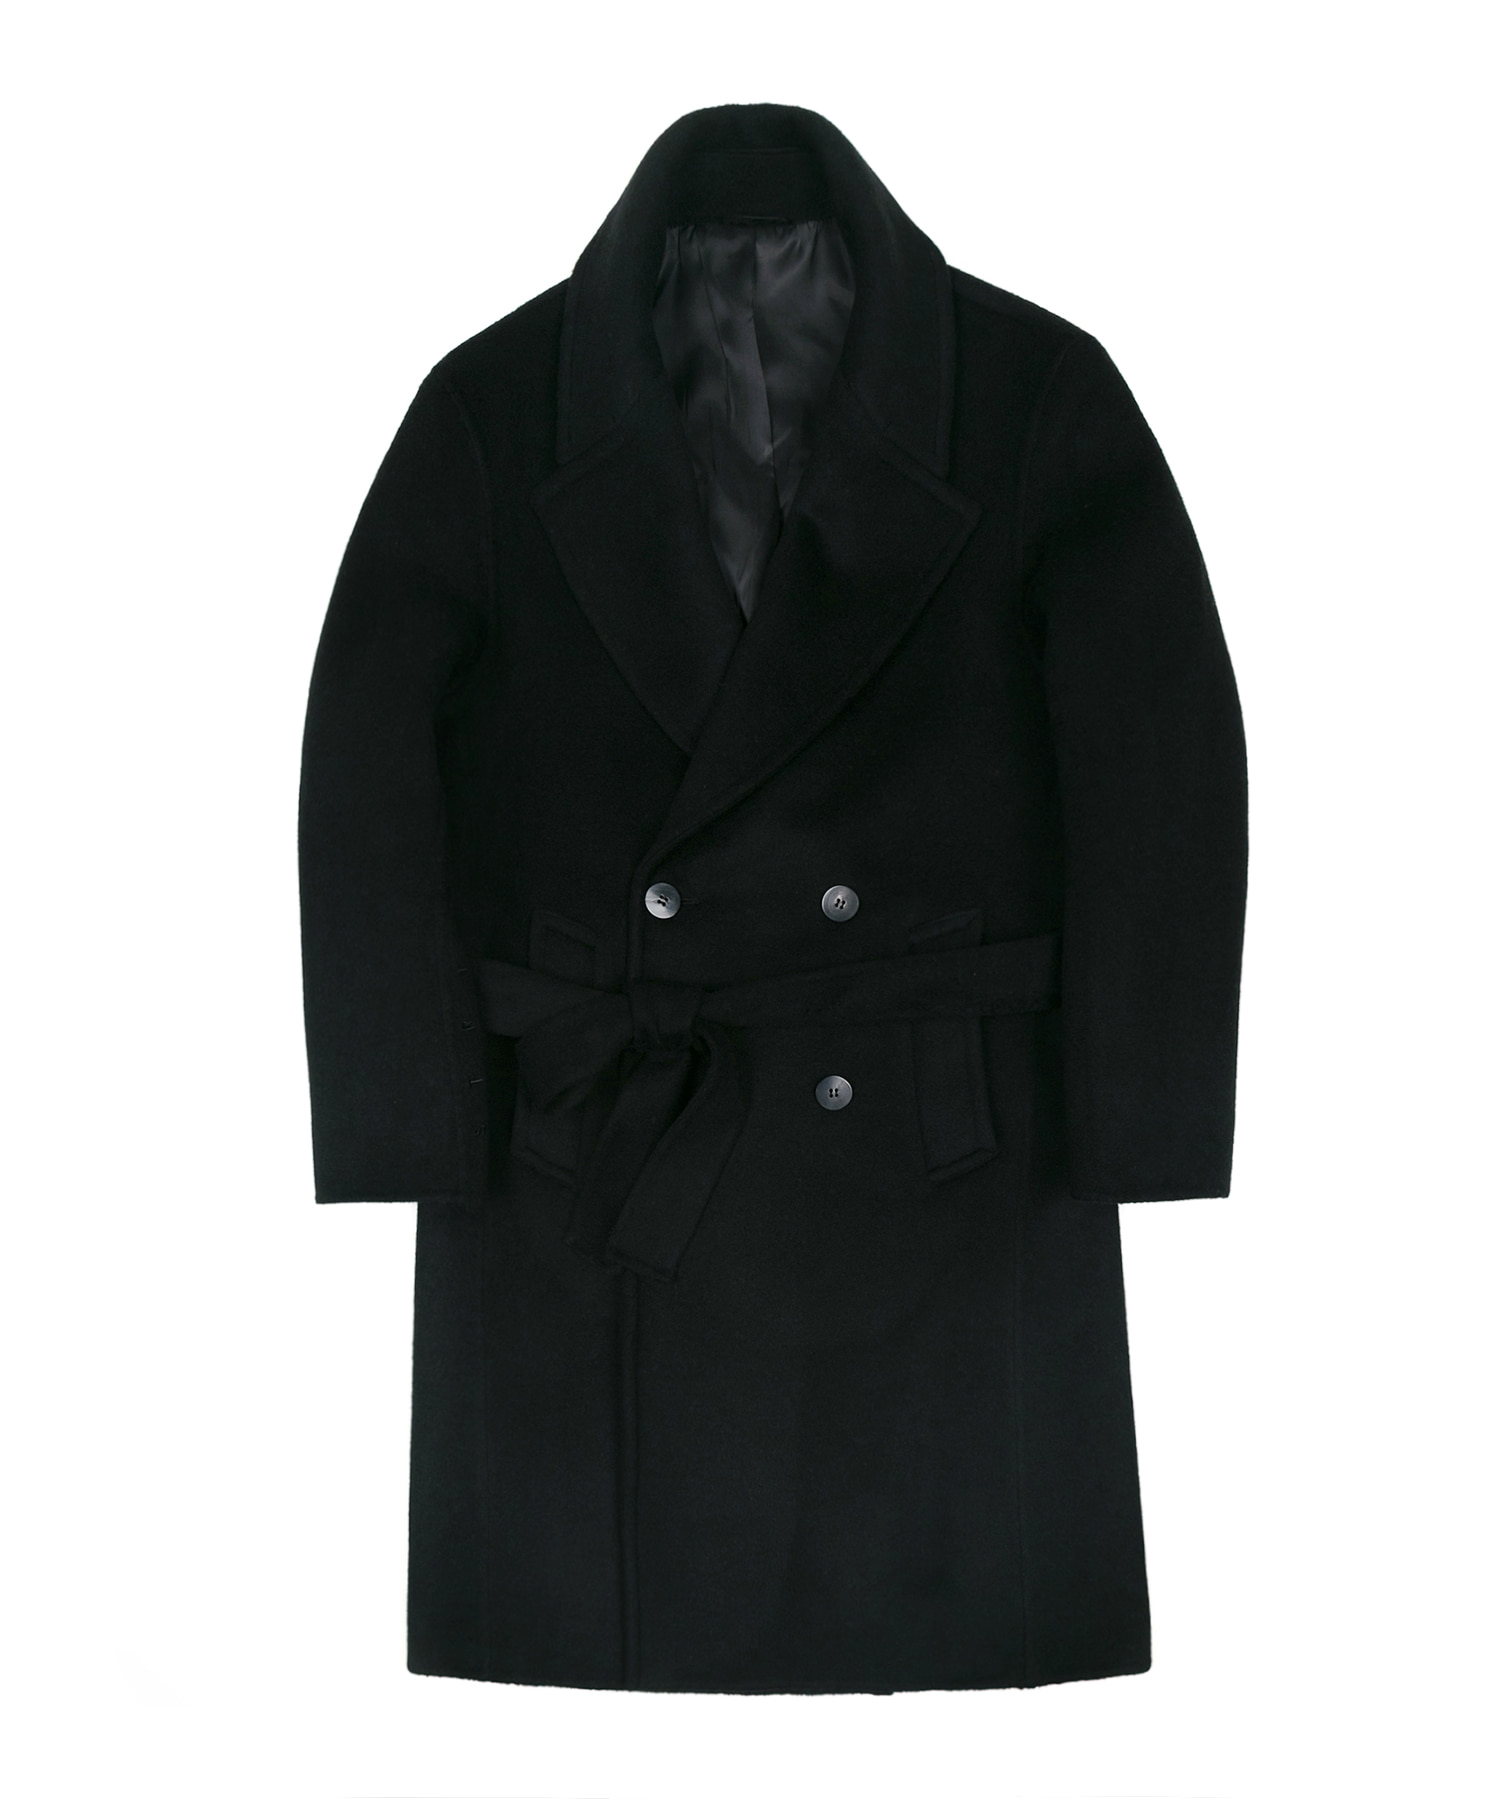 HANDMADE WOOL BREND BELTED DOUBLE COAT - BLACK